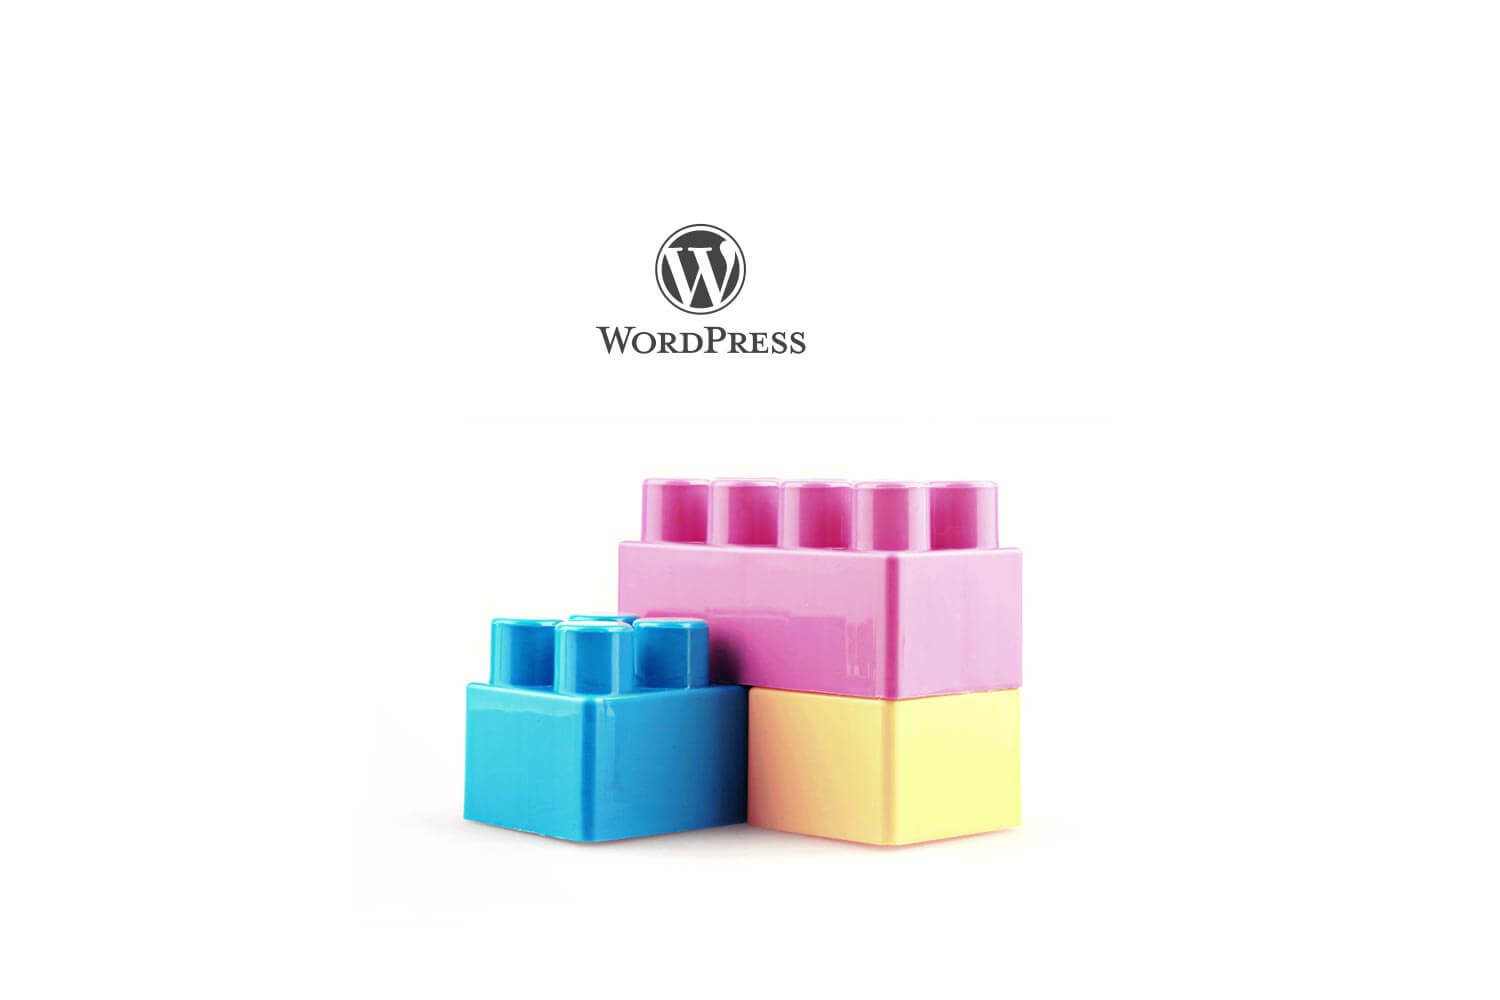 feature-modular architecture in wordpress